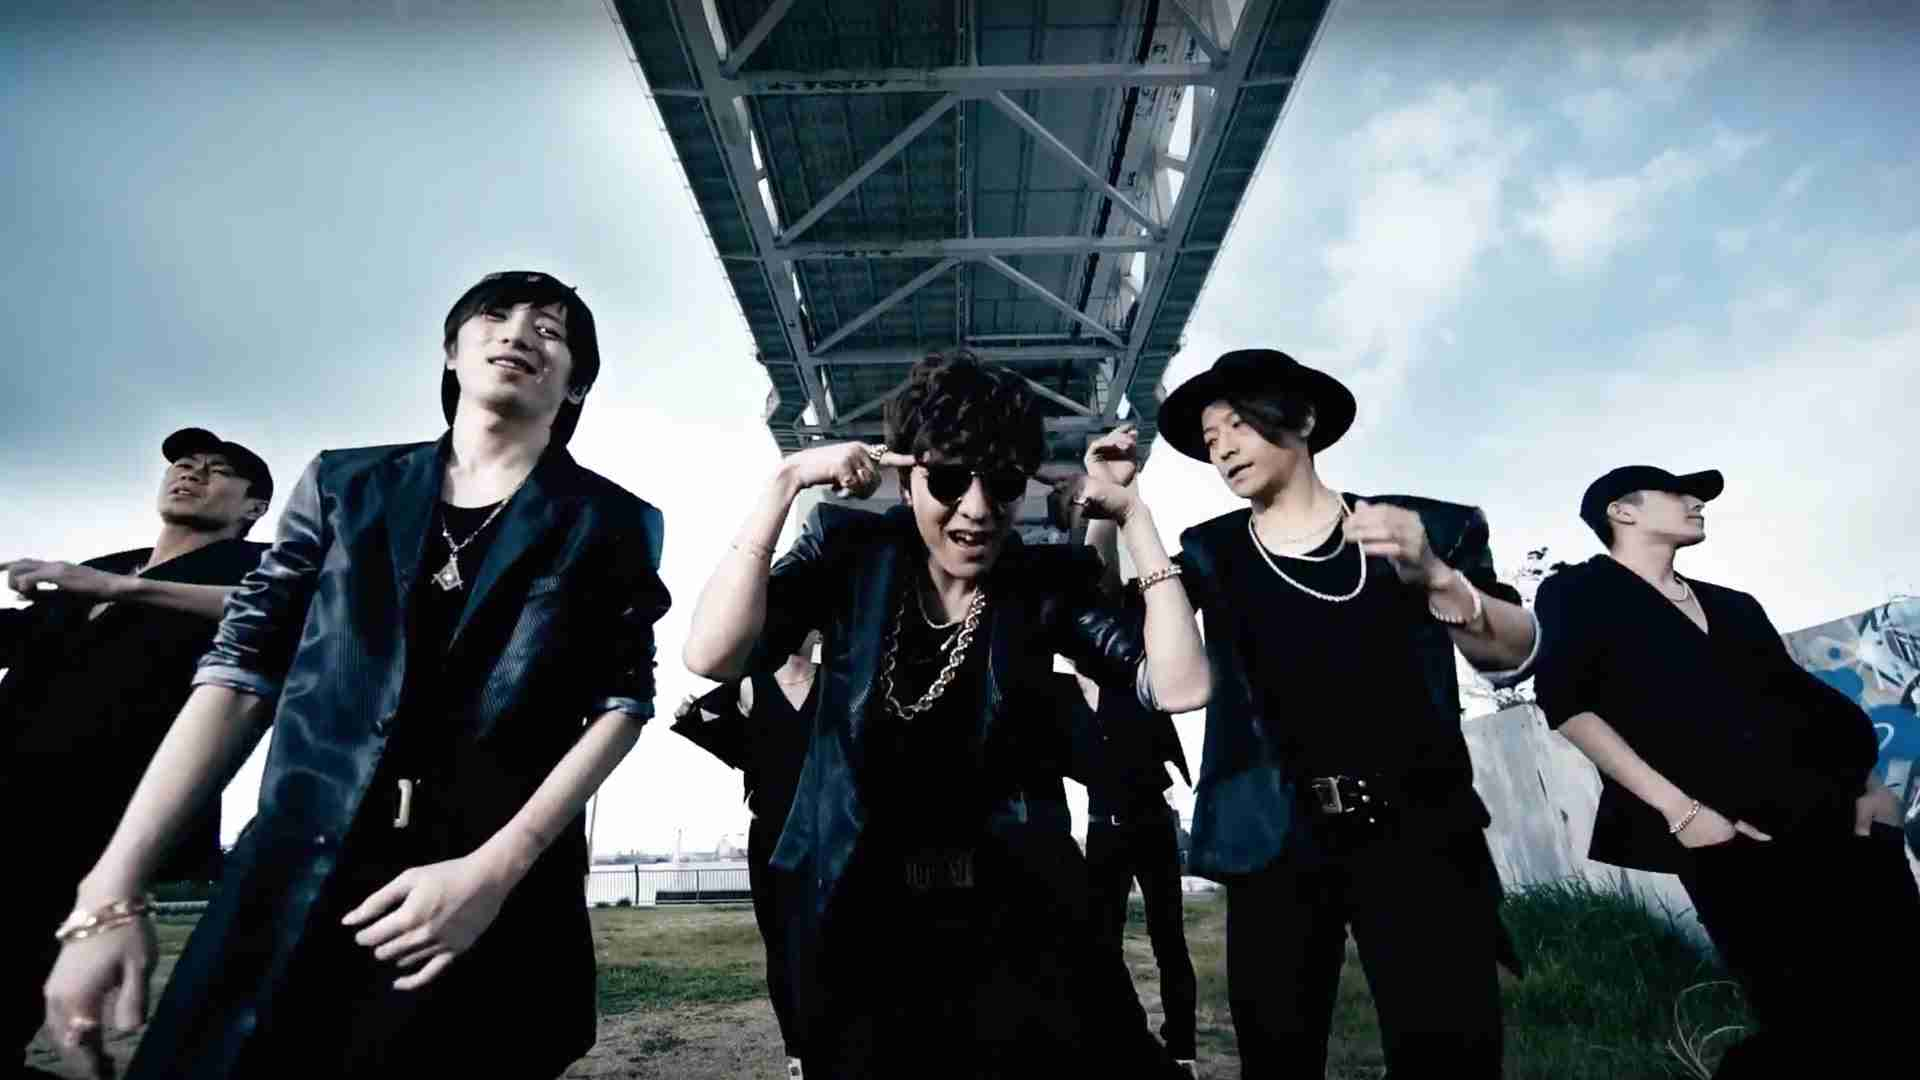 Boom Word Up / w-inds. - YouTube